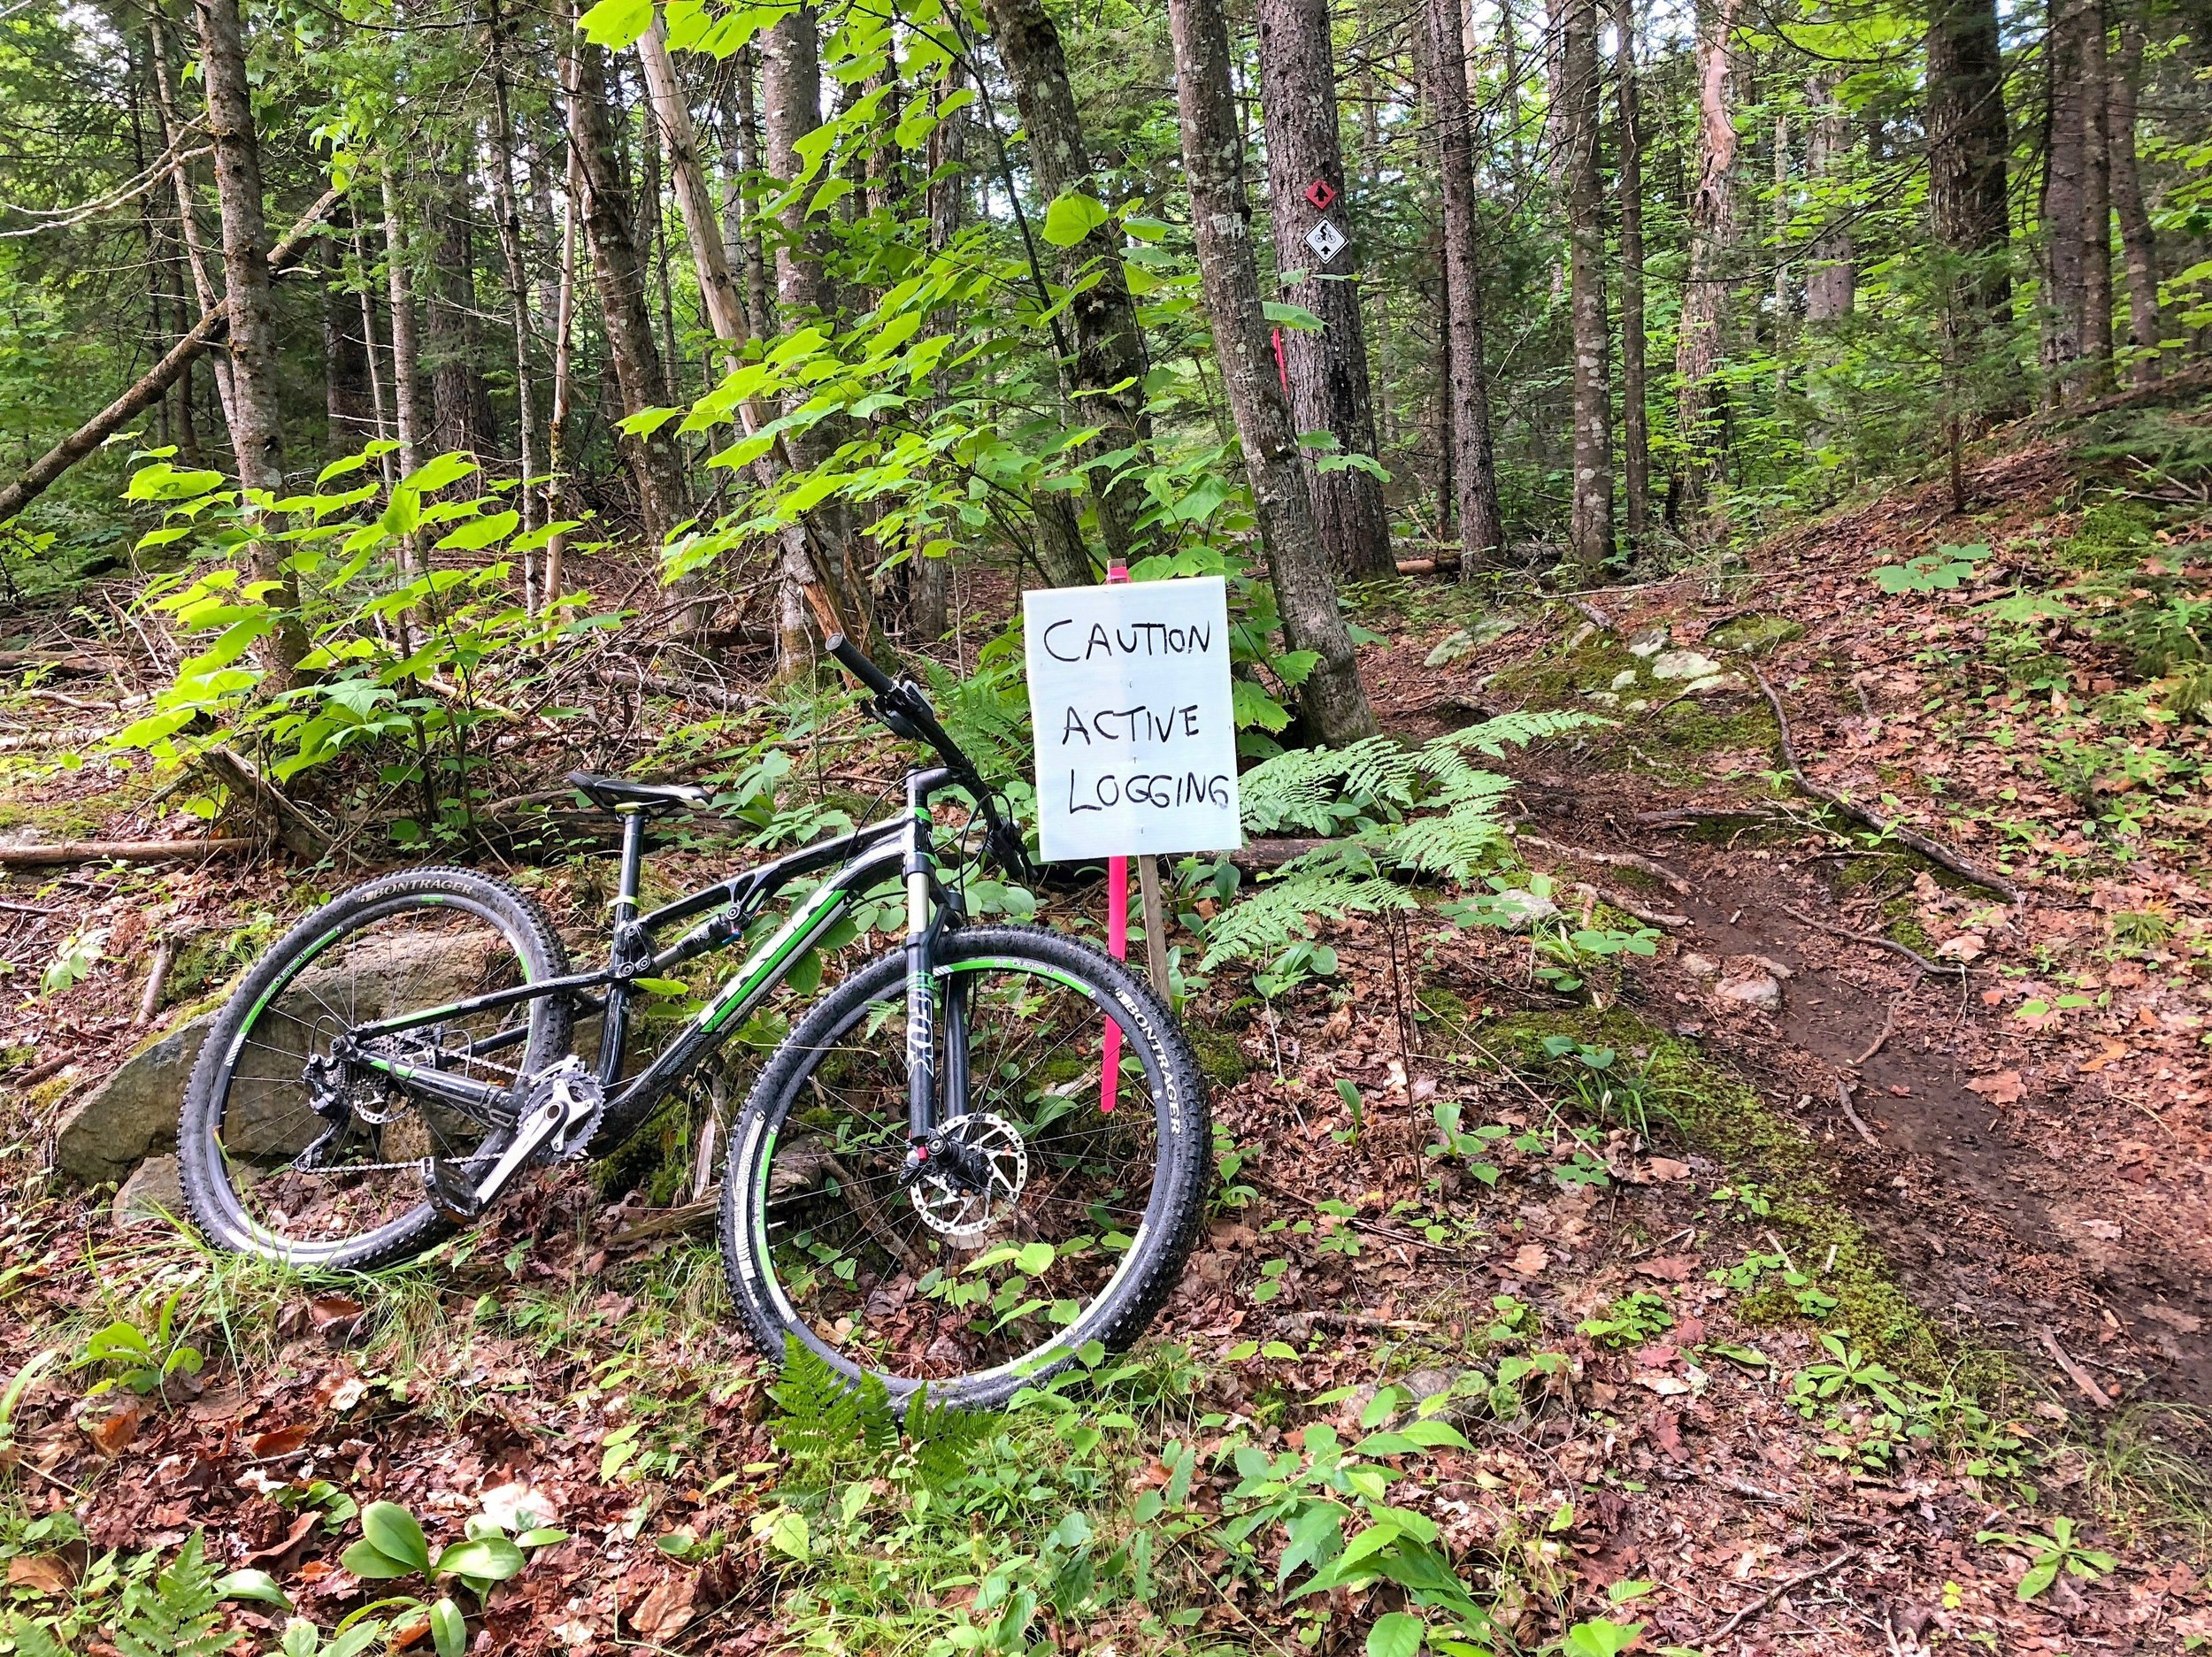 Mountain biking and timber harvesting go hand in hand in Carrabassett Valley. Photo courtesy of the Carrabassett Region New England Mountain Biking Association.